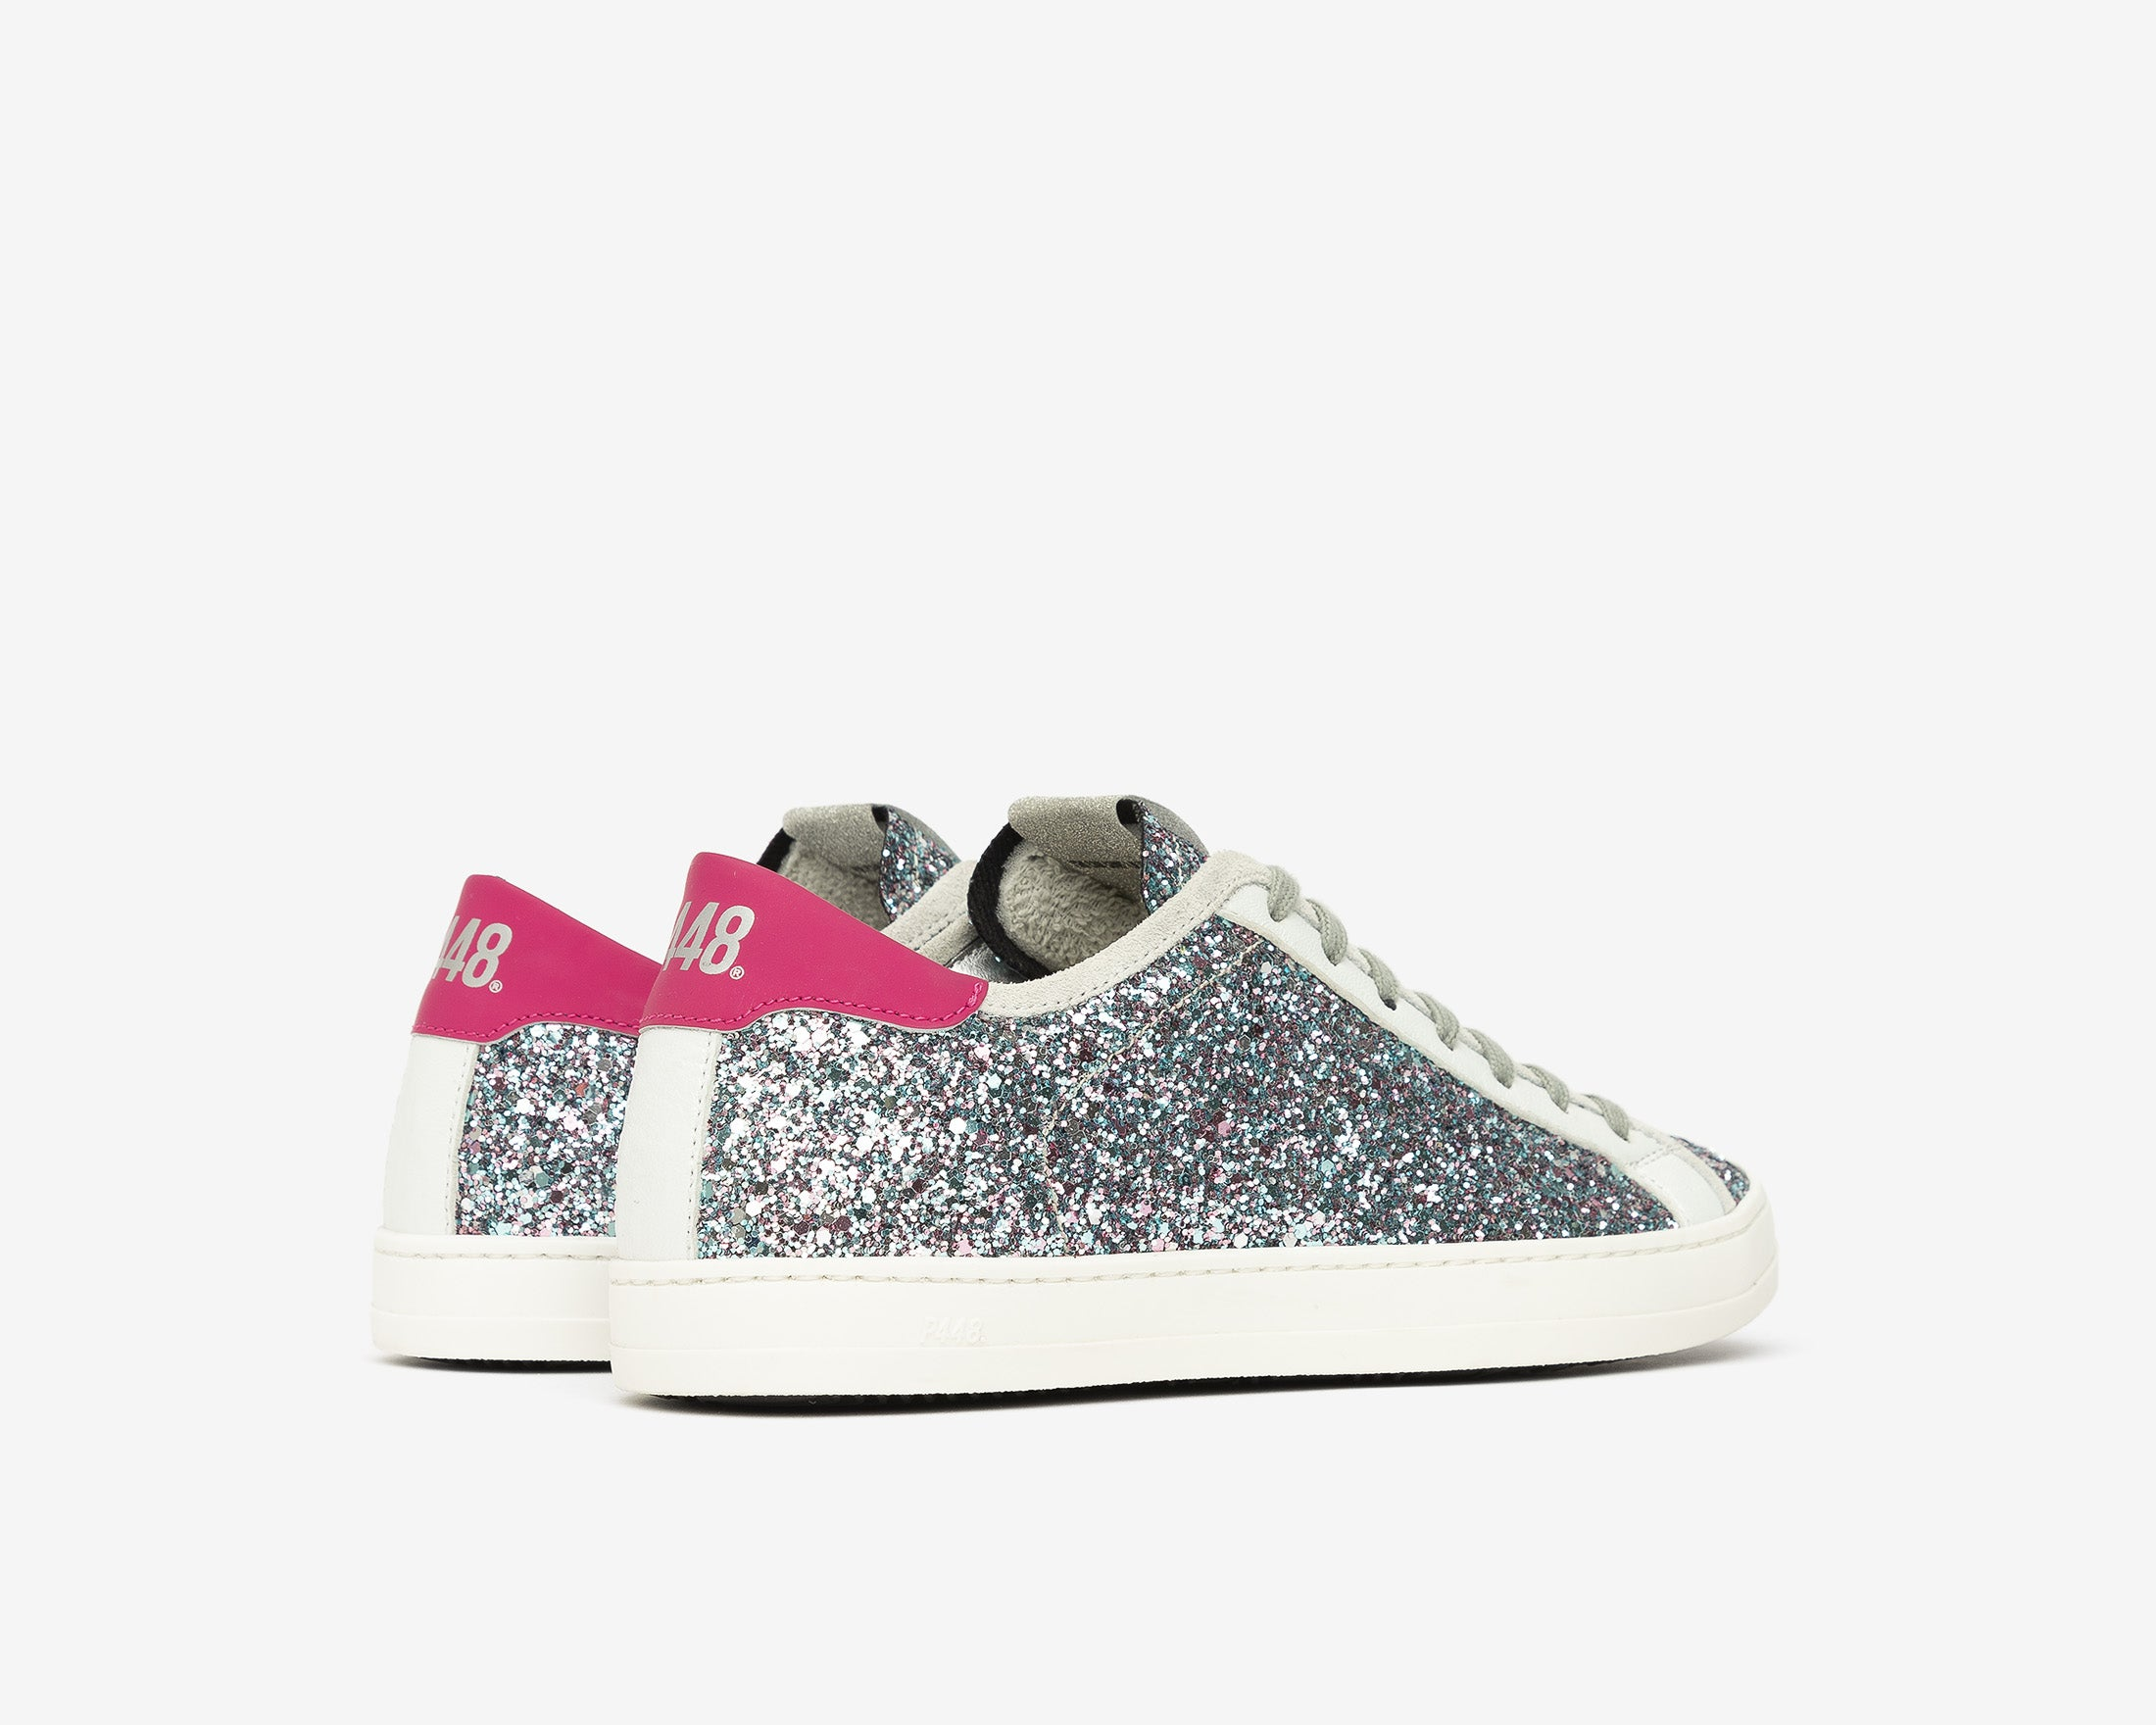 Johnny Low-Top Sneaker in LBL/Glitter - Side